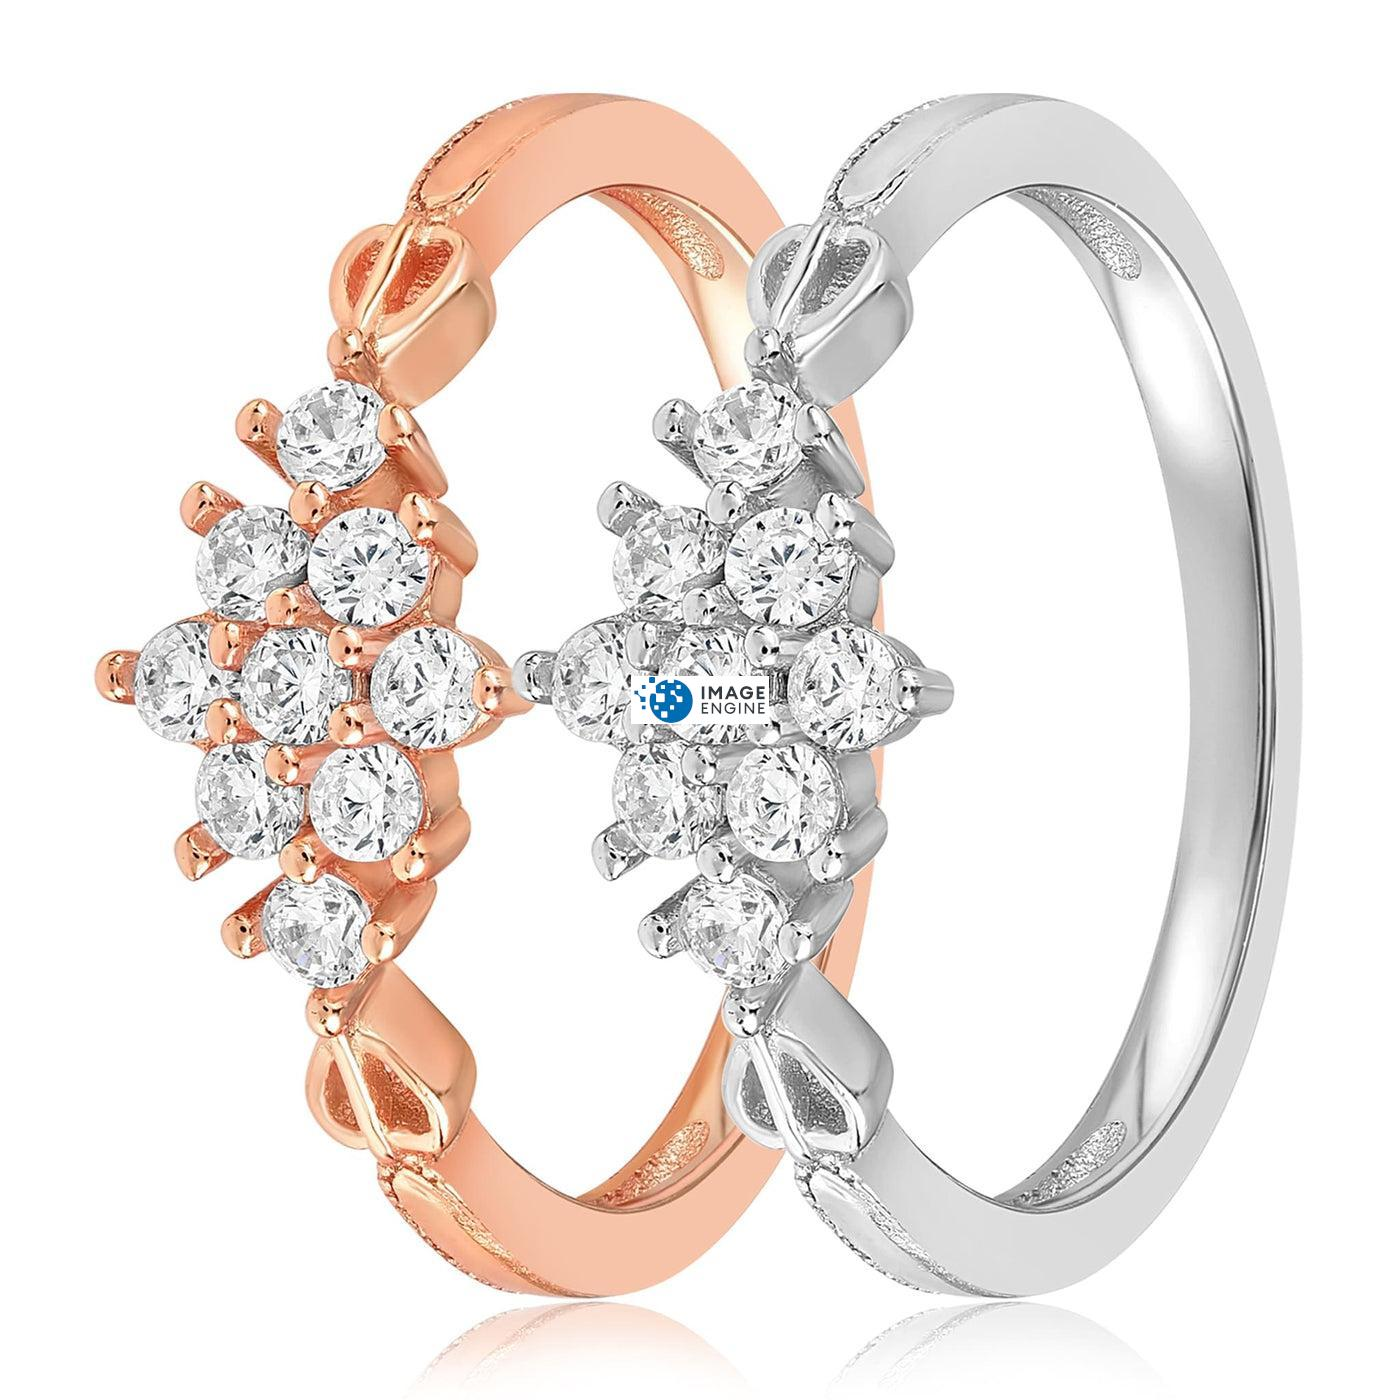 Sarah Snowflake Dainty Ring - Side by Side - 925 Sterling Silver and 18K Rose Gold Vermeil